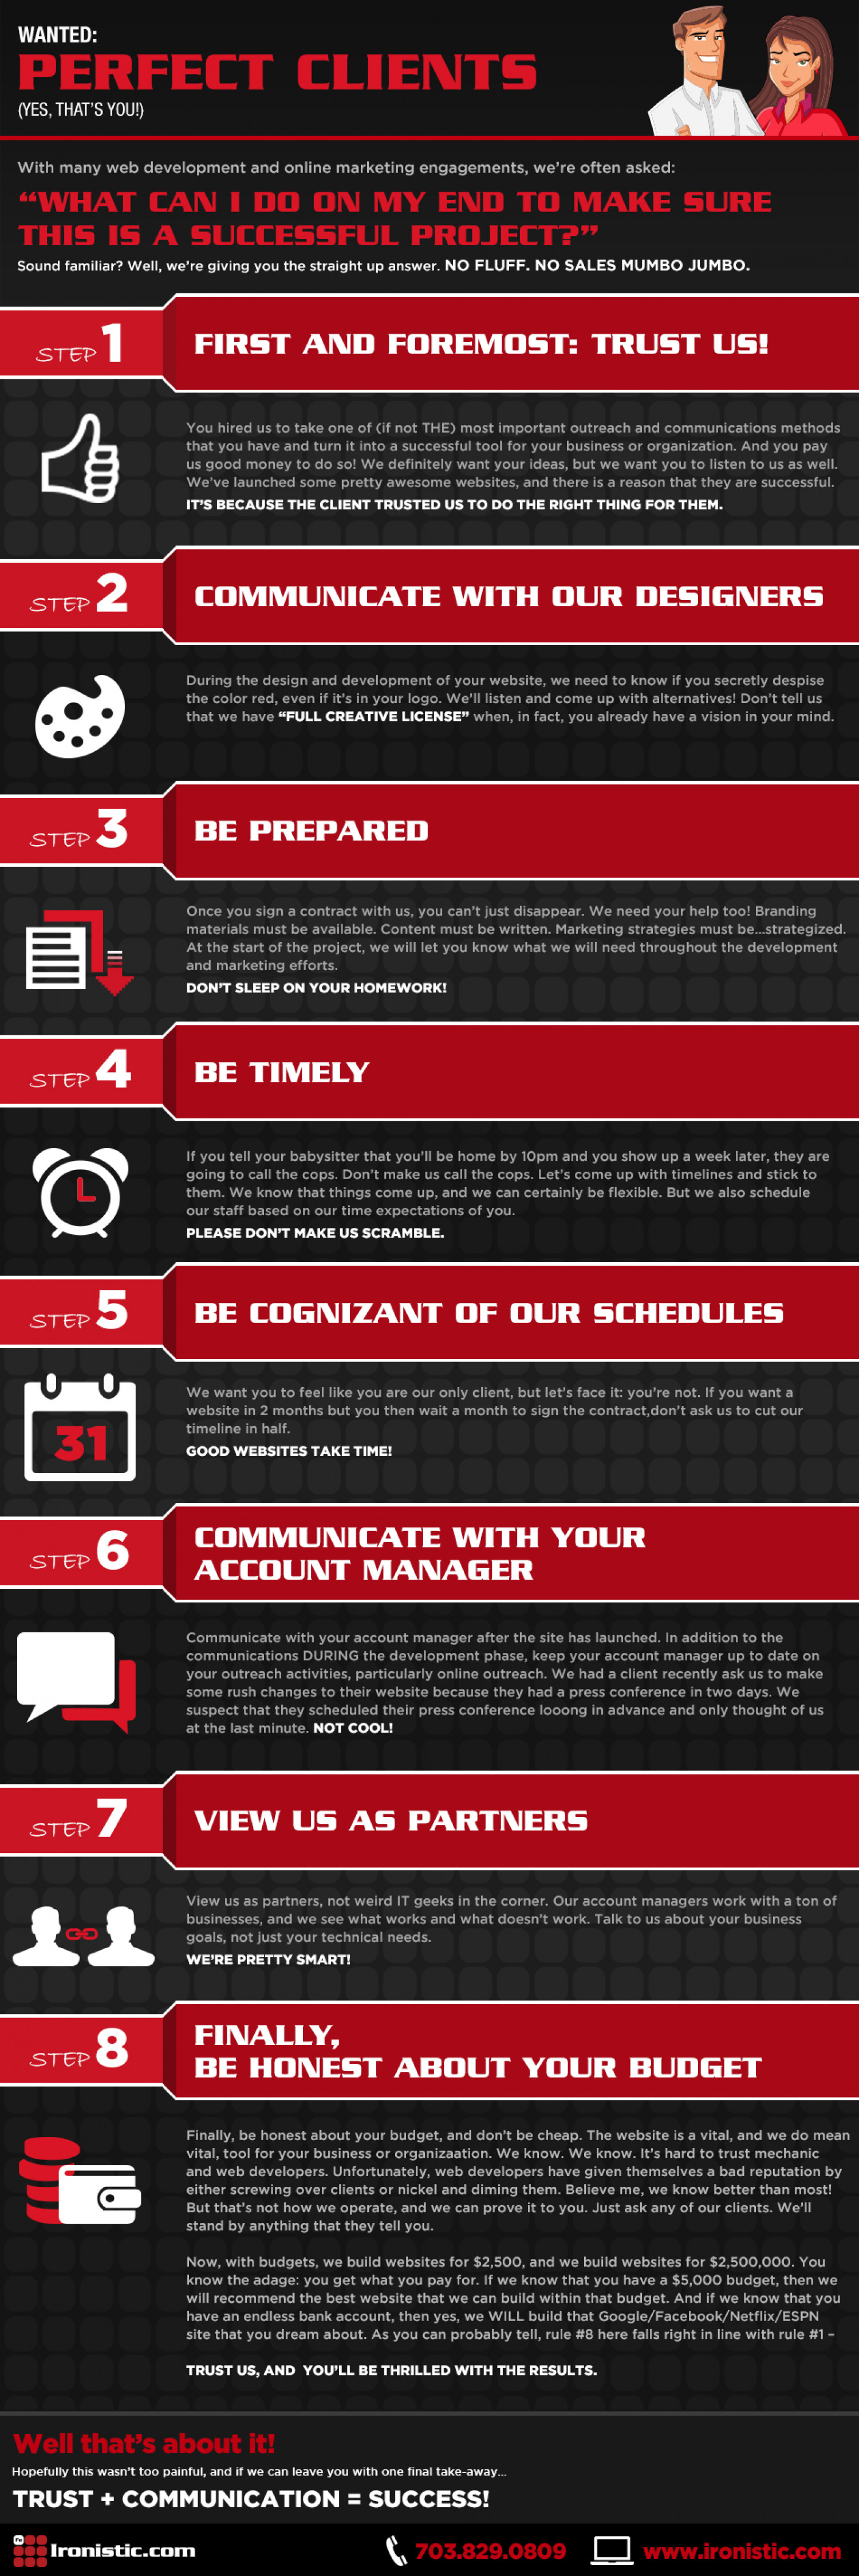 Wanted: Perfect Clients Infographic